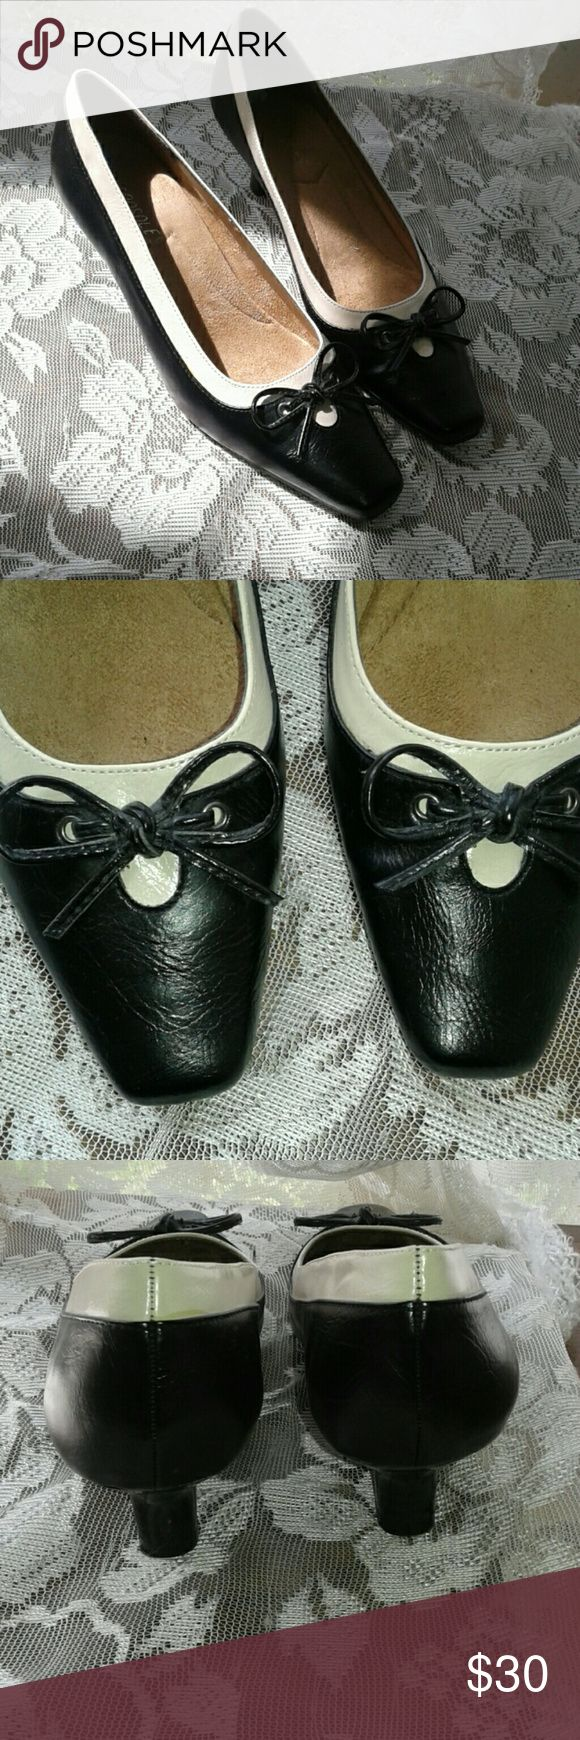 """Aerosoles black and cream bow heels """"Dimpressive"""" heels by aerosoles. Black and cream. 2 inch heel. Square toe topped with a pretty bow. Like new!!! Size stickers are still on. AEROSOLES Shoes Heels"""